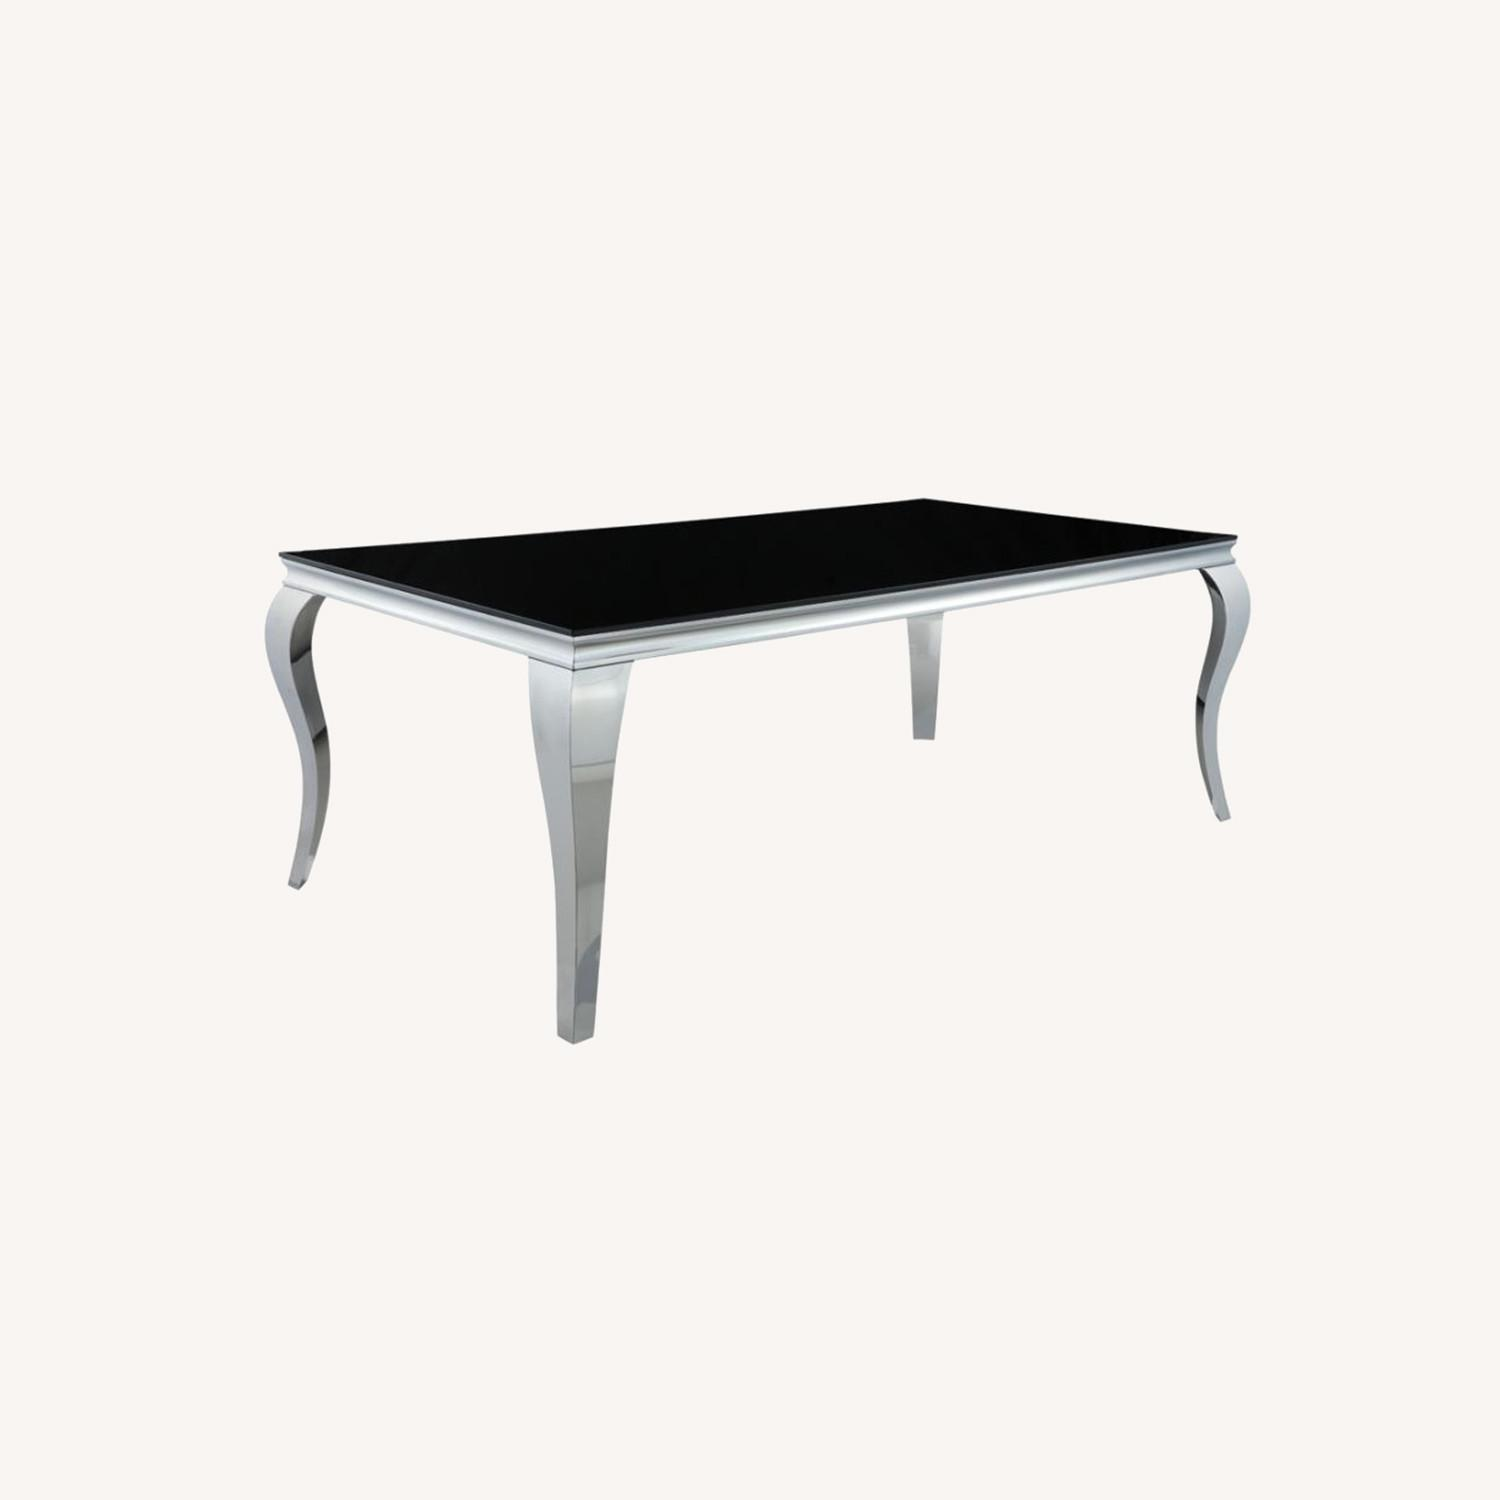 Dining Table In Chrome Finish W/ Black Top - image-5